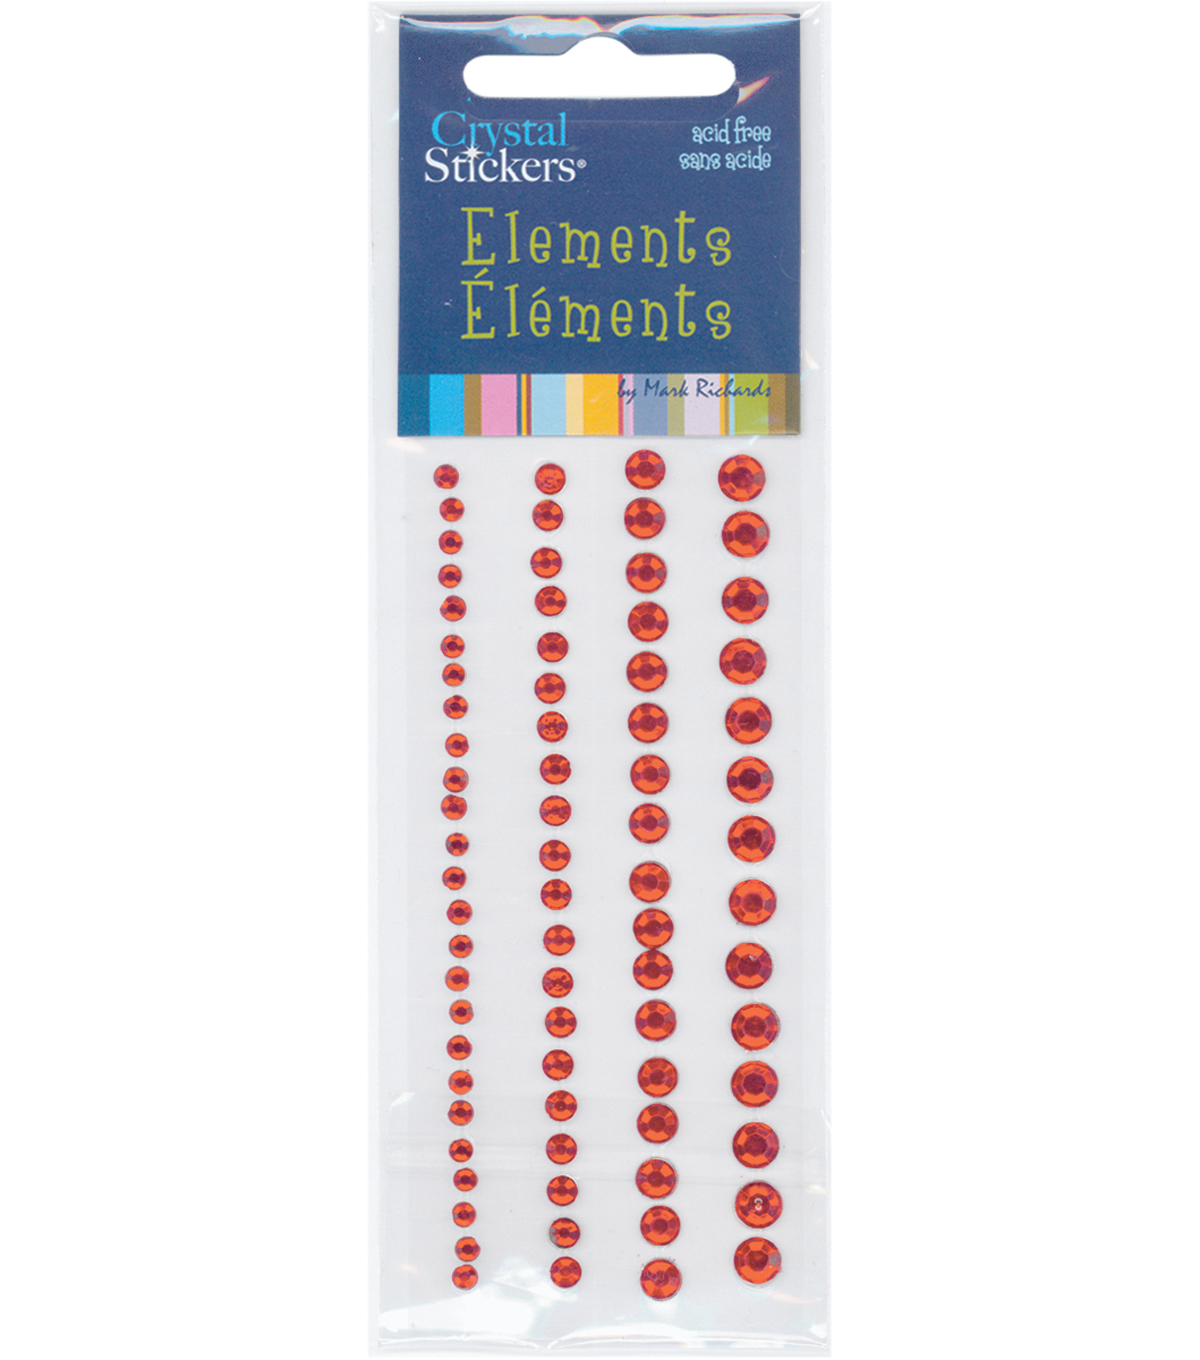 Crystal Stickers Elements 4 Strips-Assorted Round